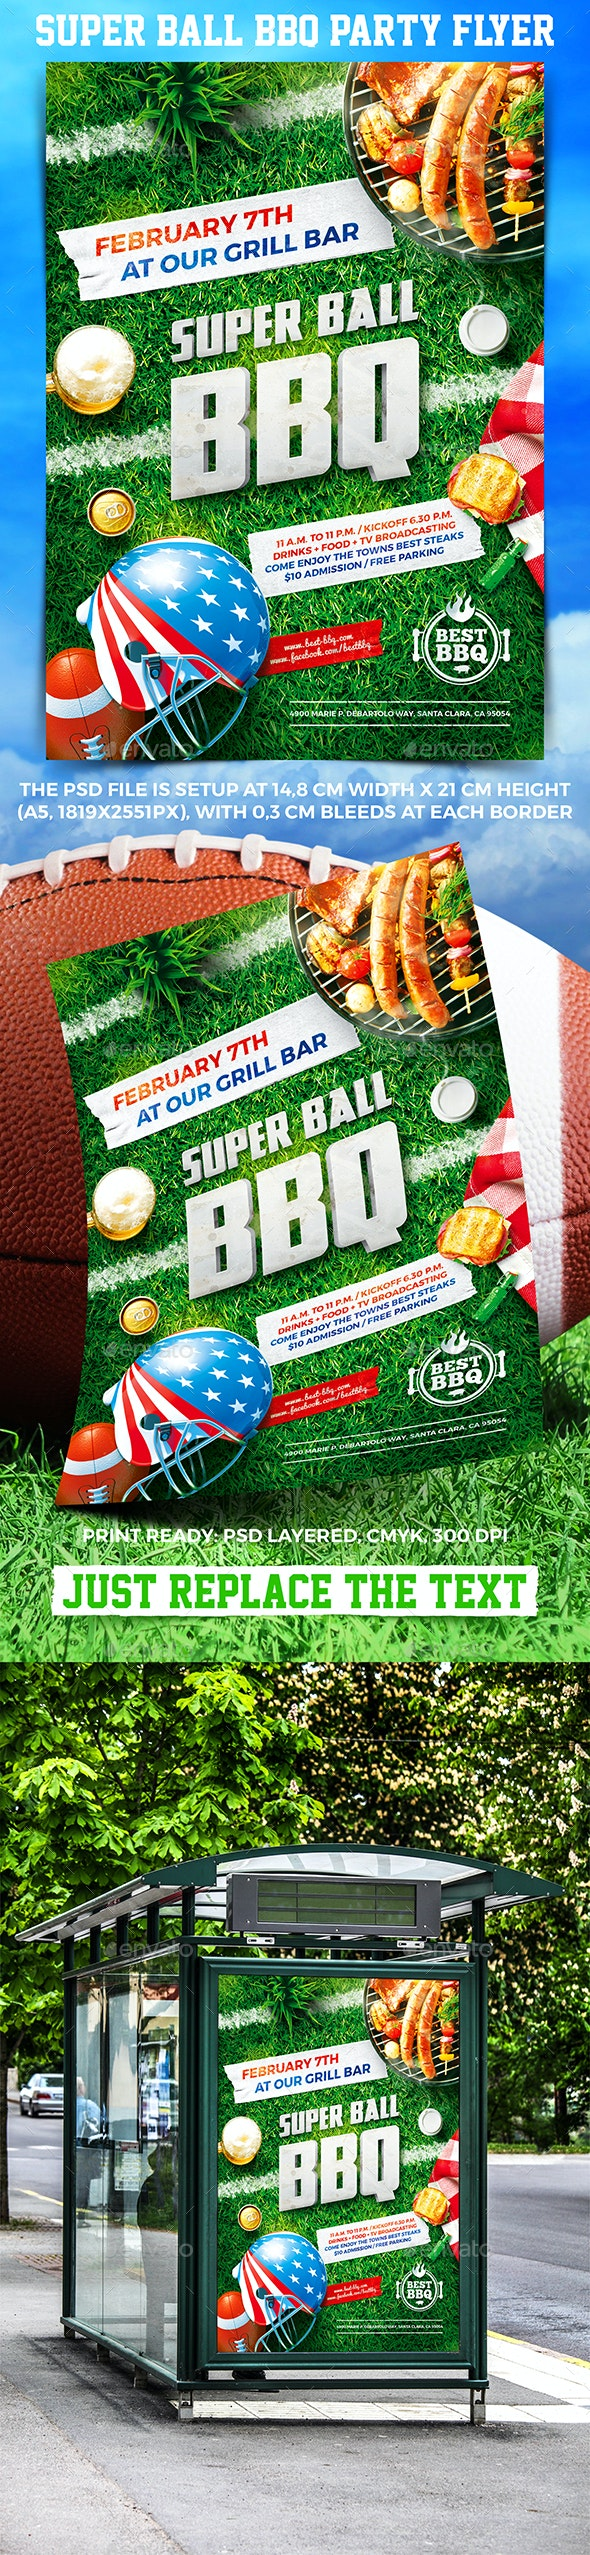 Super Ball BBQ Party Flyer - Events Flyers